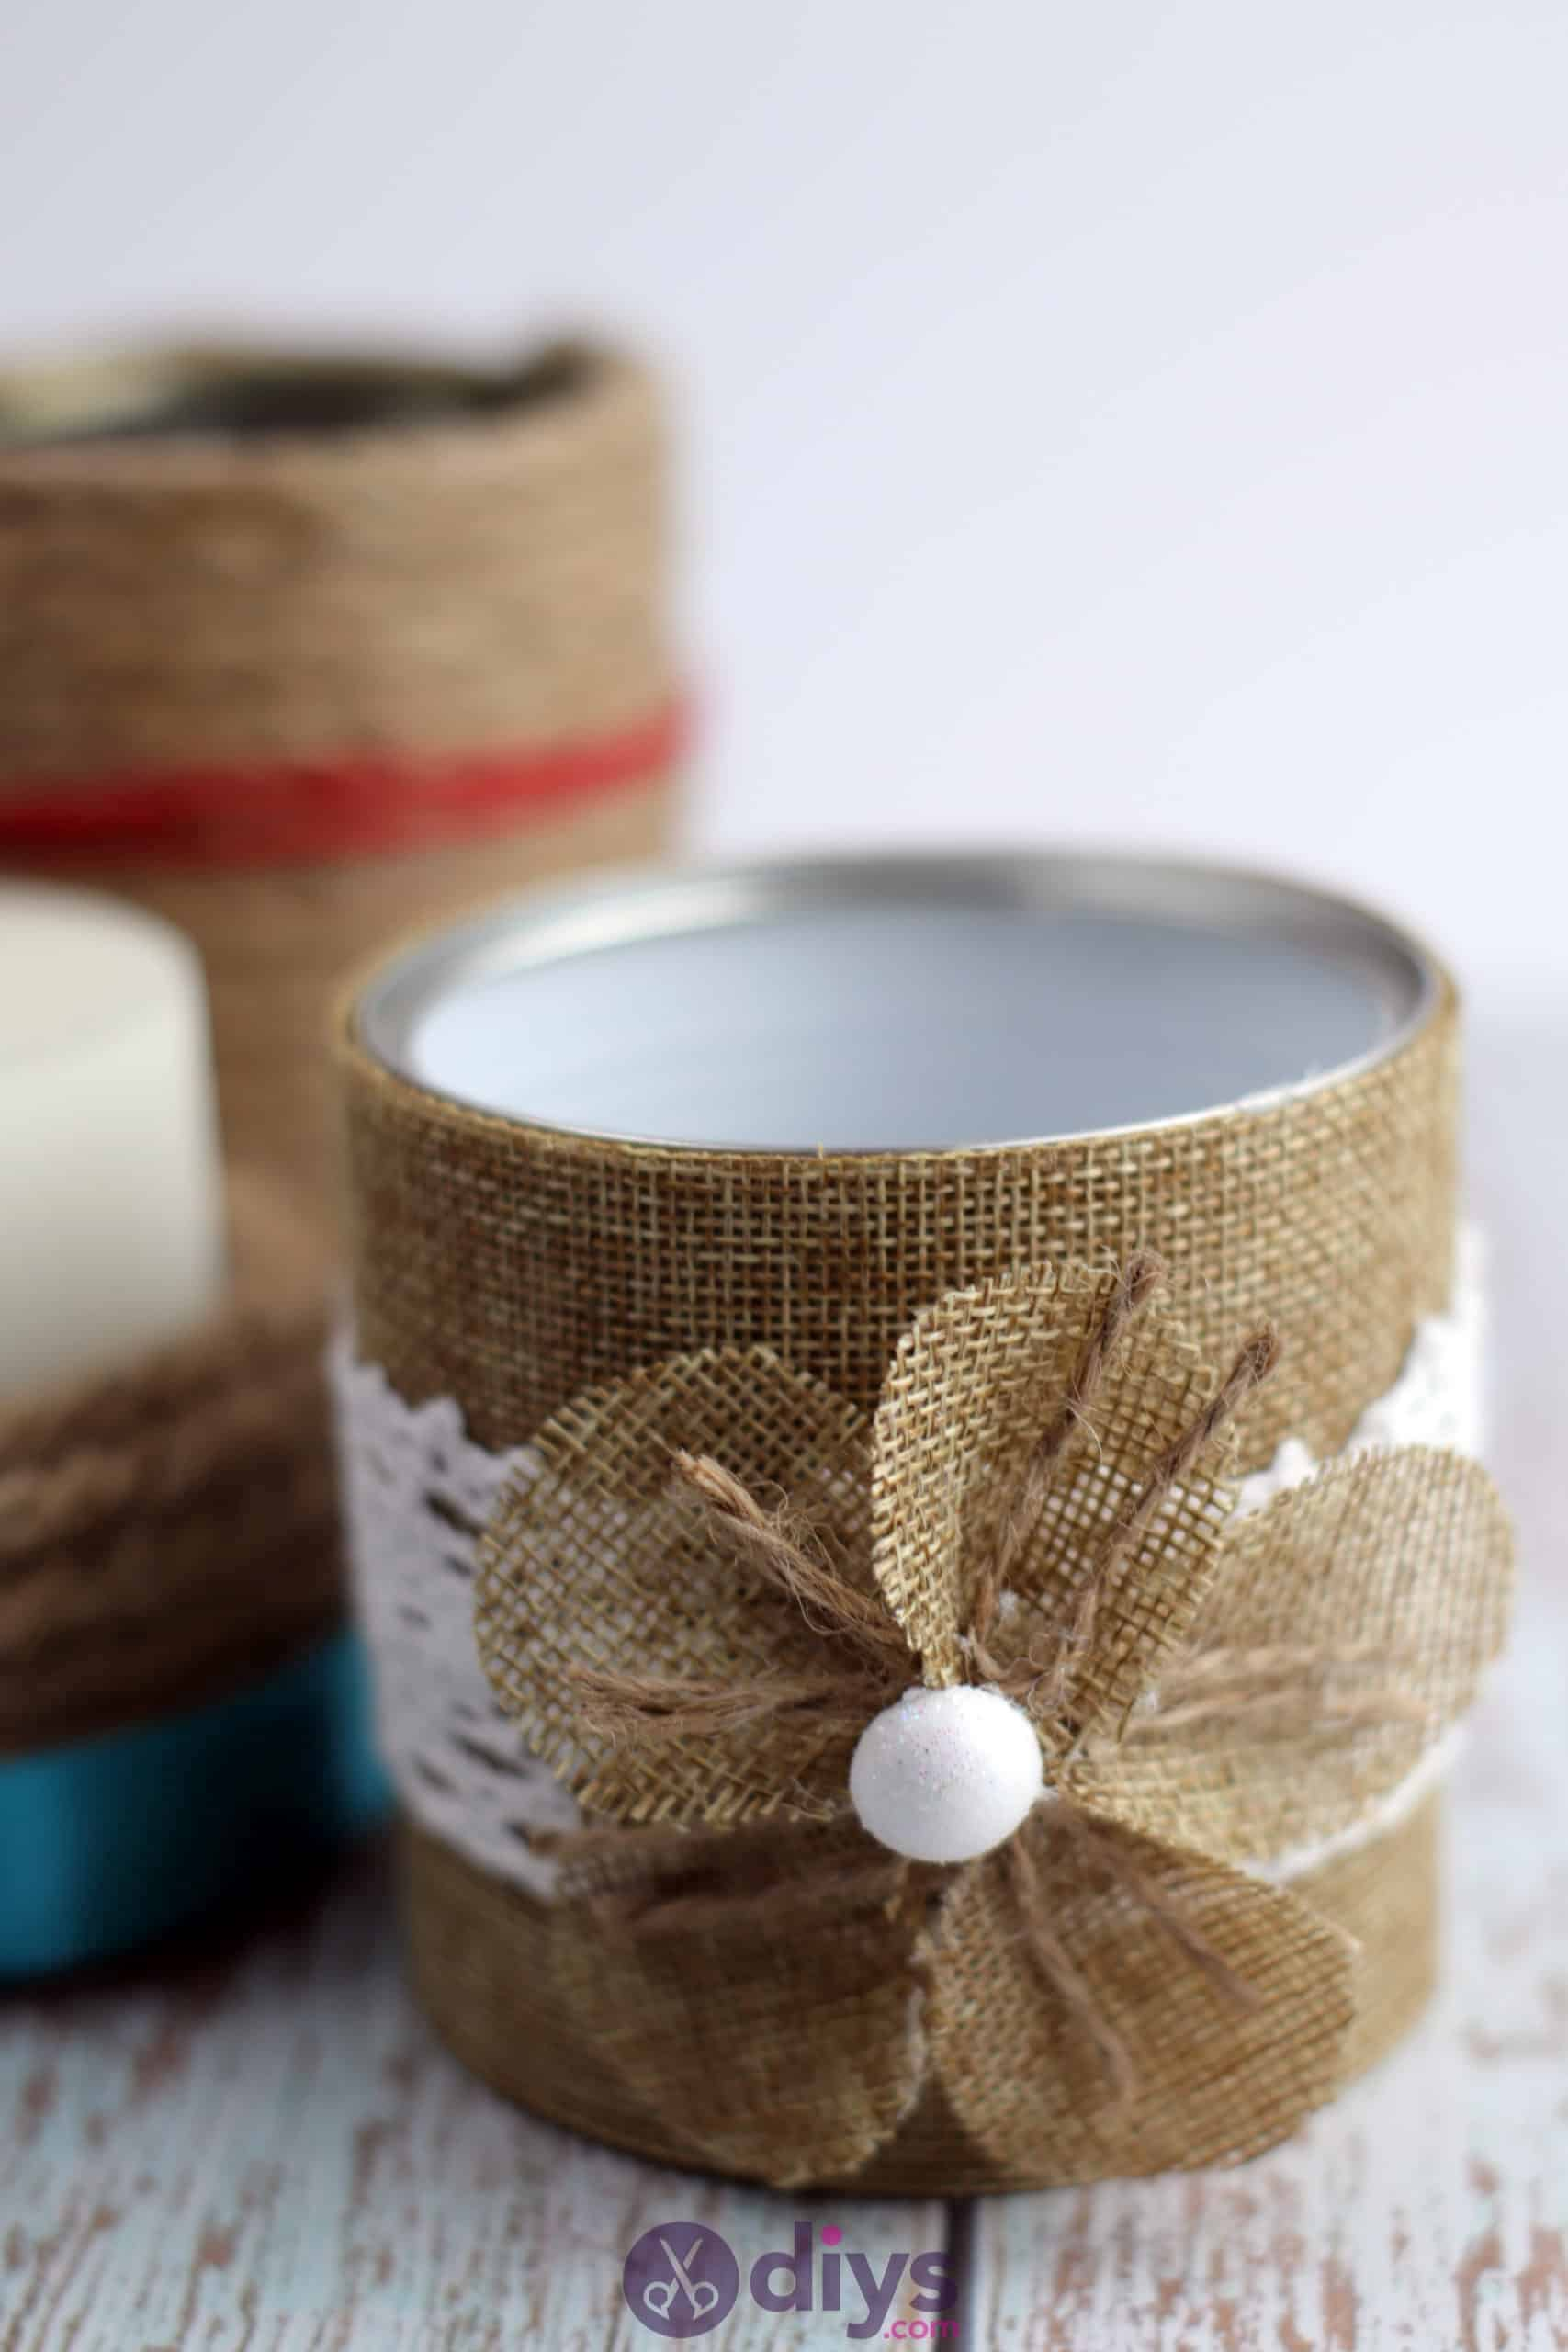 Diy rustic tin can container craft